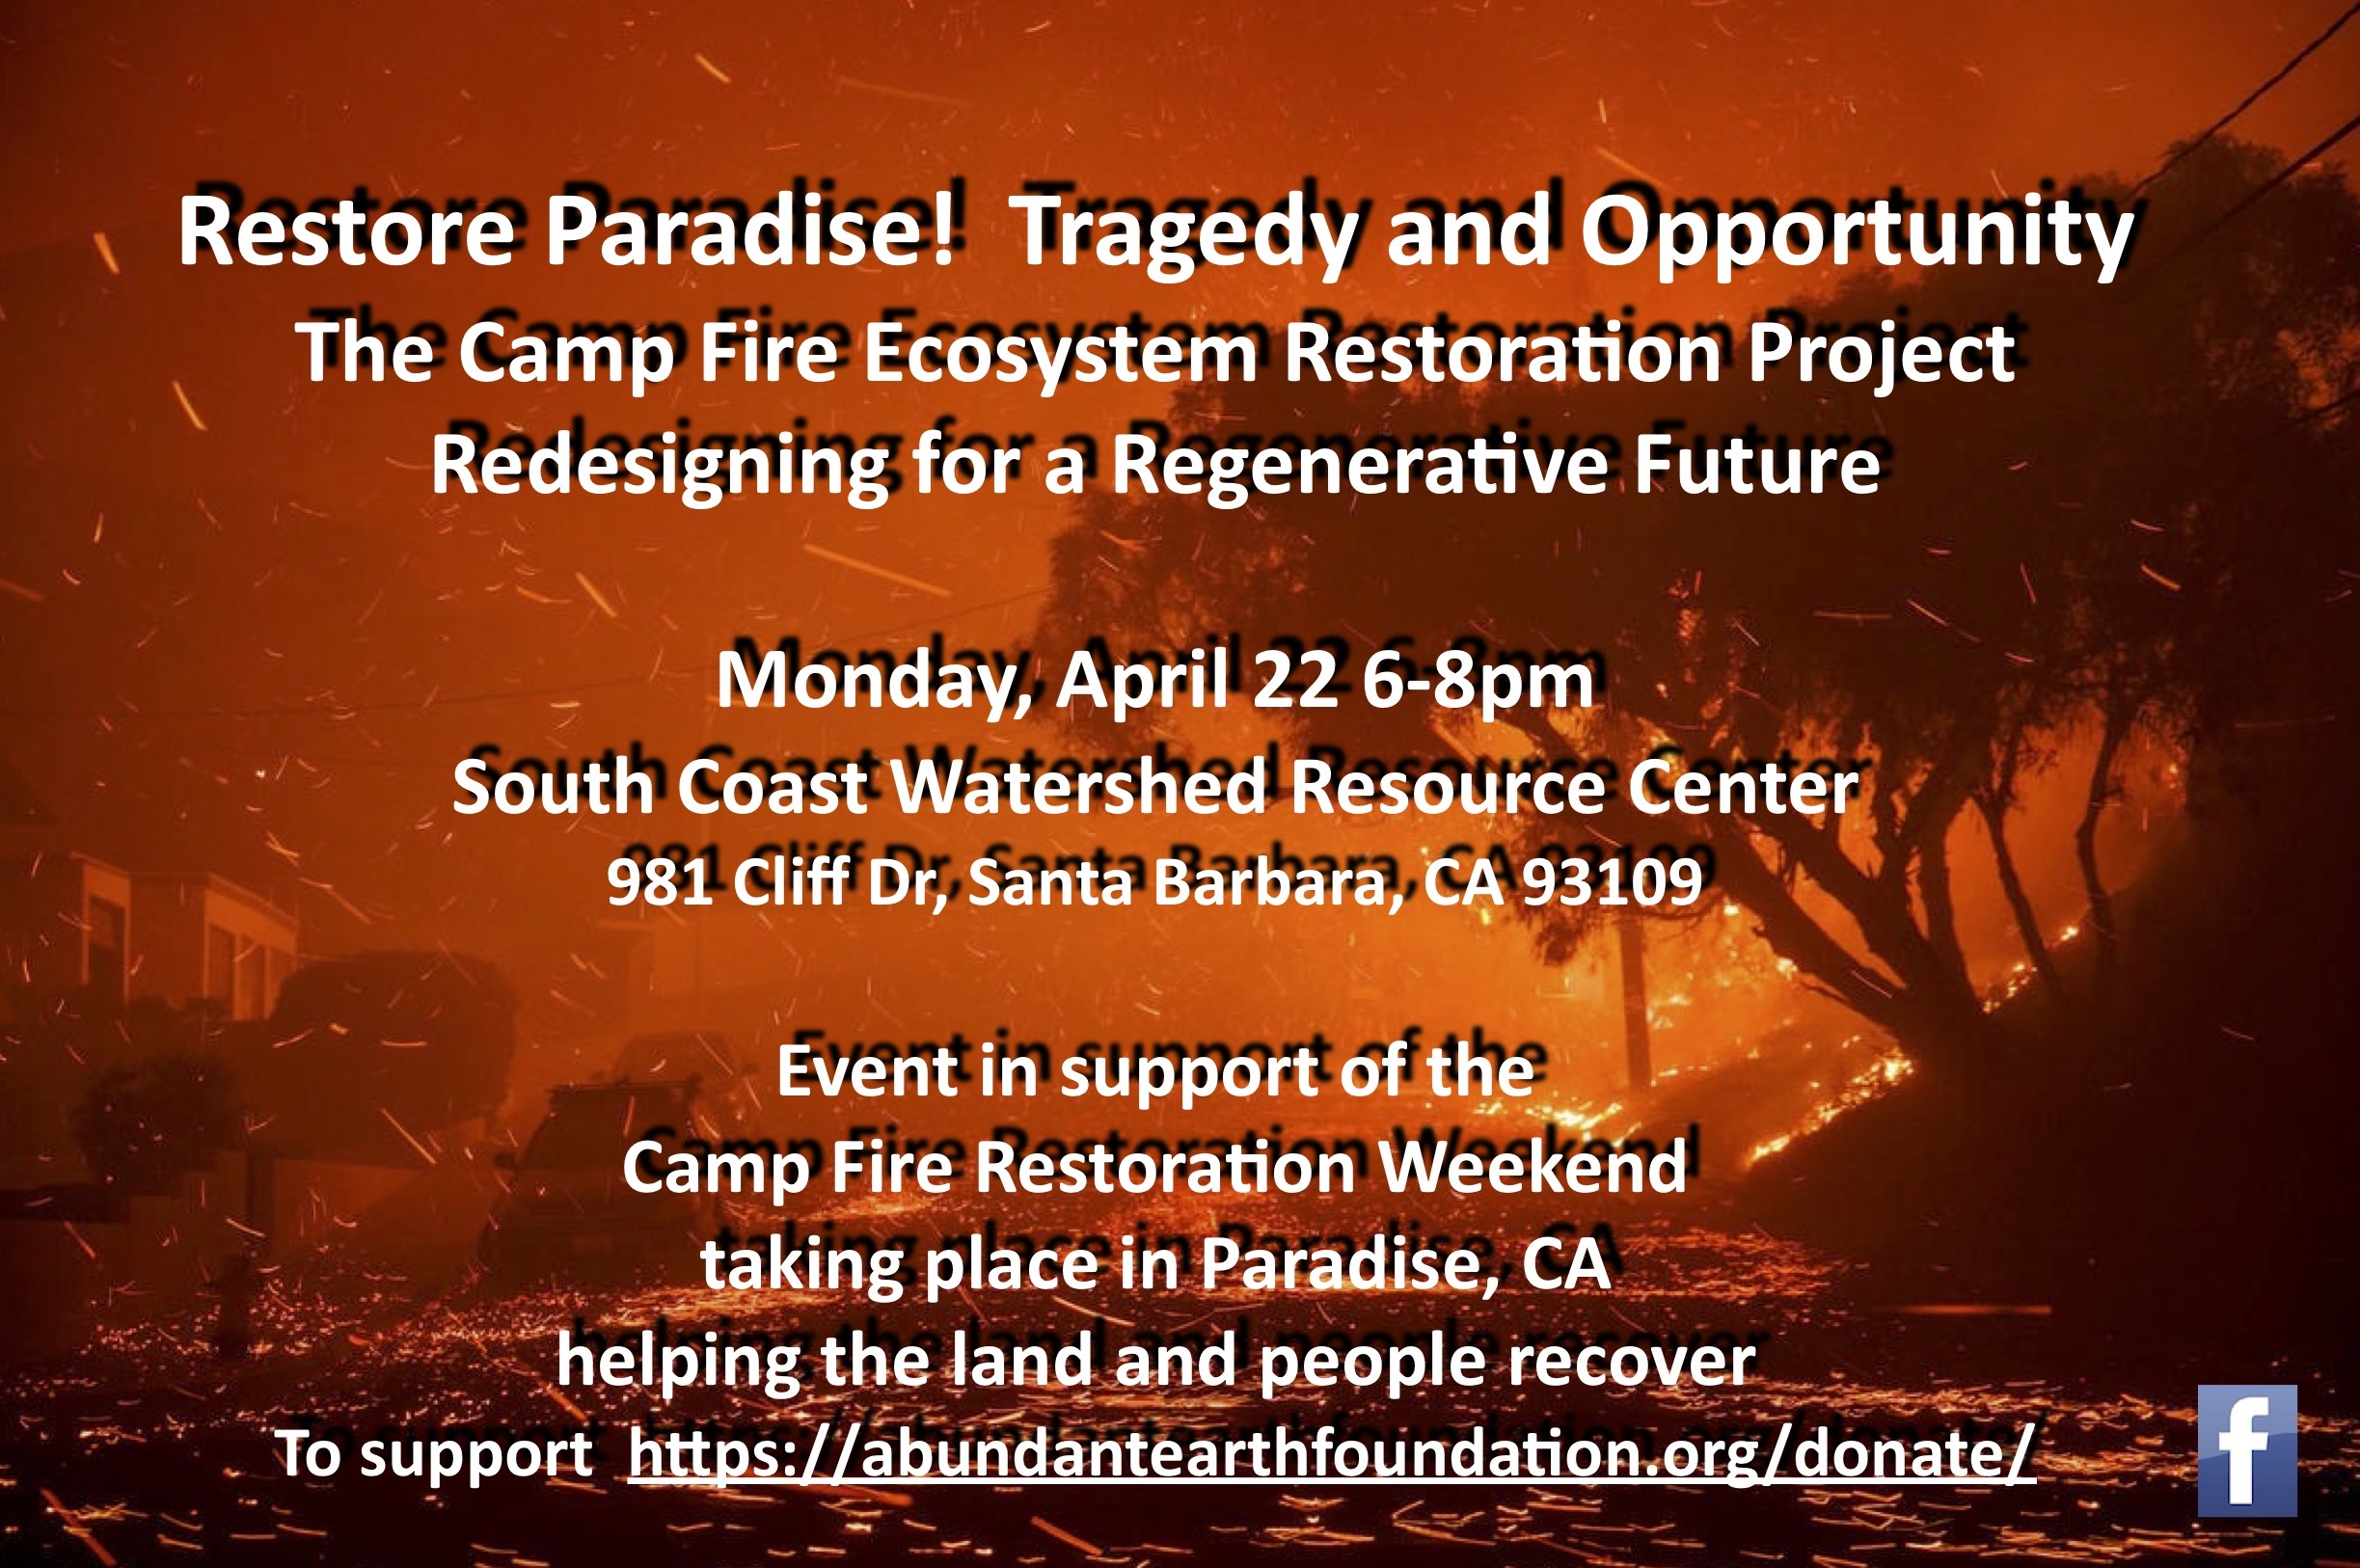 Restore Paradise! Tragedy & Opportunity/The Camp Fire Ecosystem Restoration Project Redesigning for a Regenerative Future